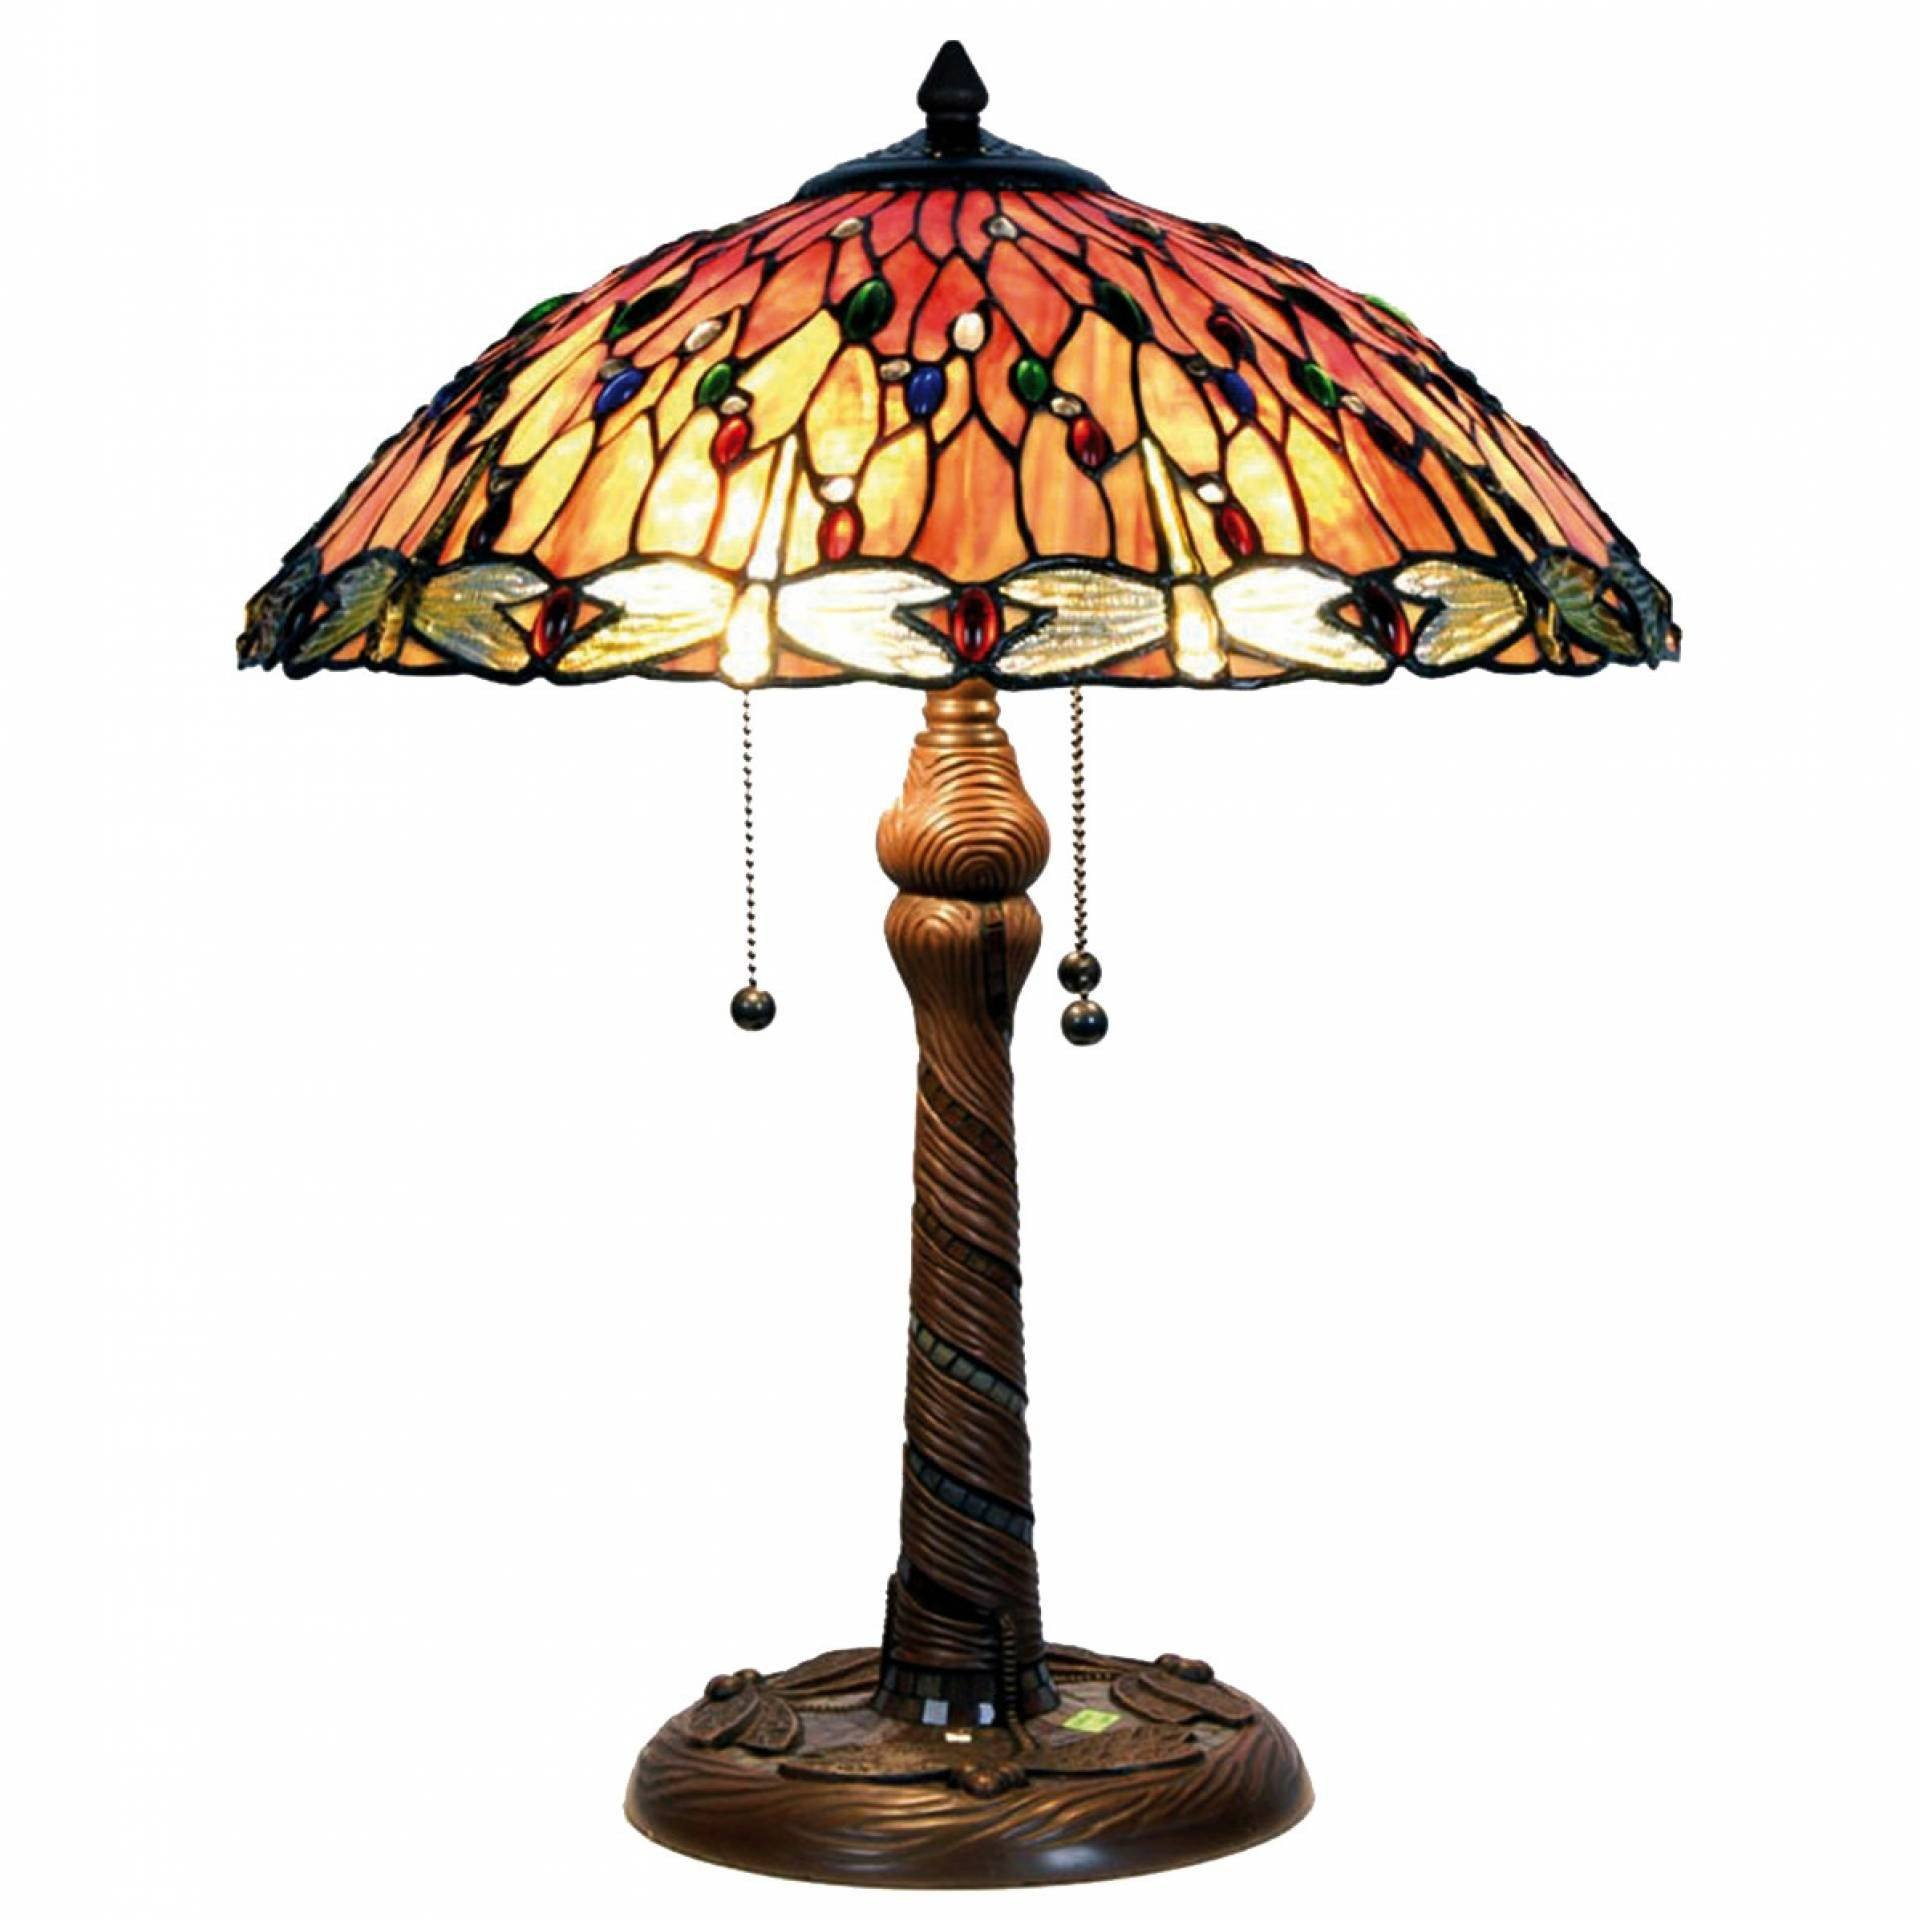 tiffany lamps red dragonfly tiffany lamp OAEAXHO